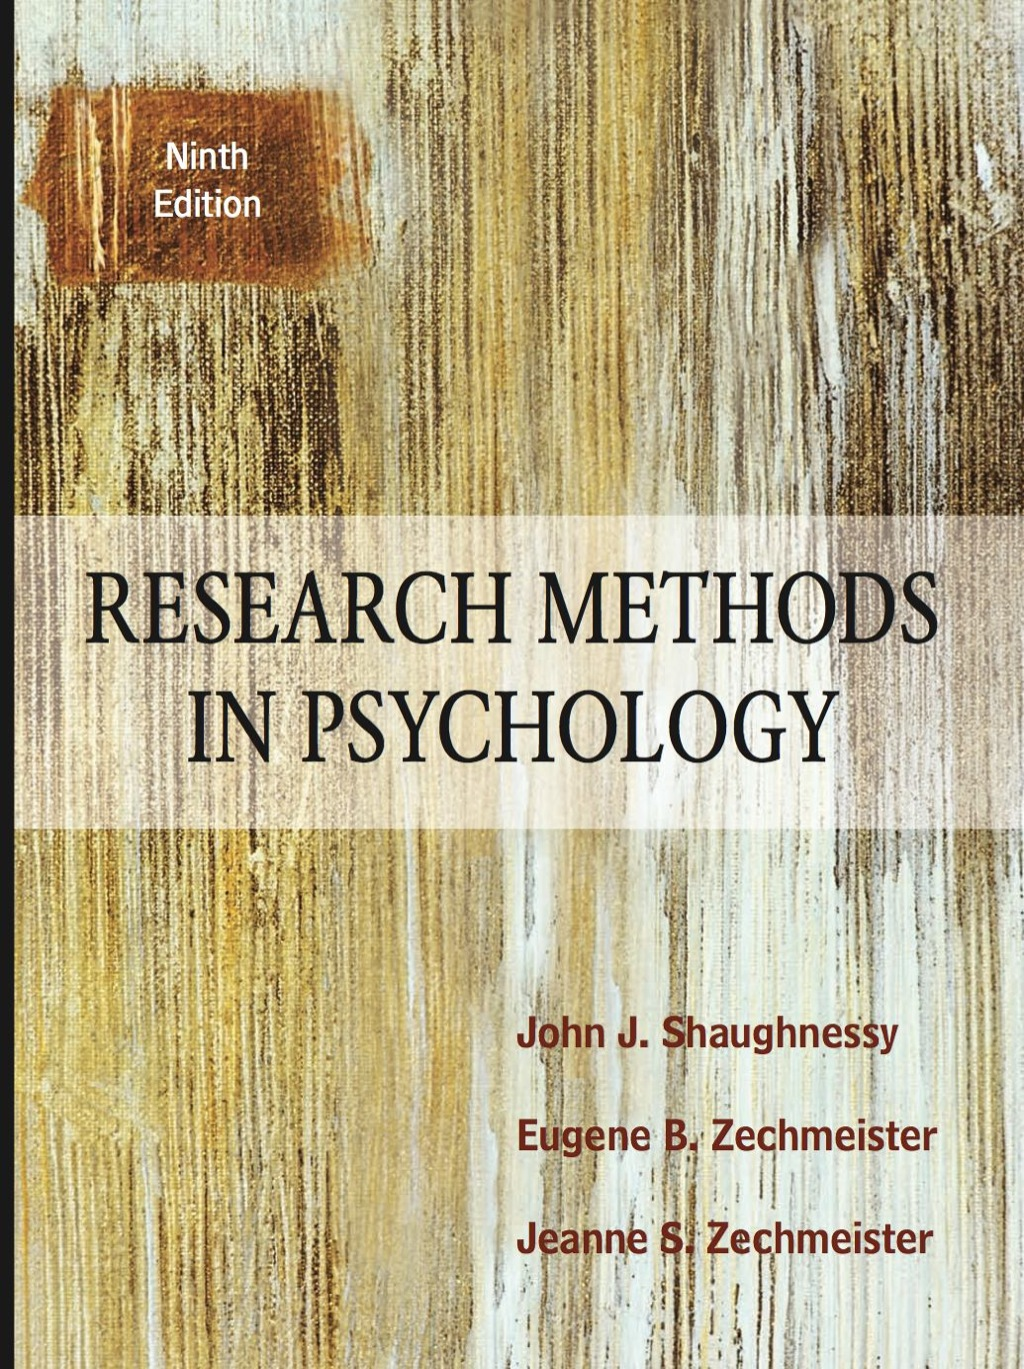 my research interests in psychology Welcome to research in psychology this course reviews scientific method in psychology it is meant for psychology majors or students with a clear interest in research we will discuss how science works, how scientific reasoning differs from other ways of thinking, and what we can and.